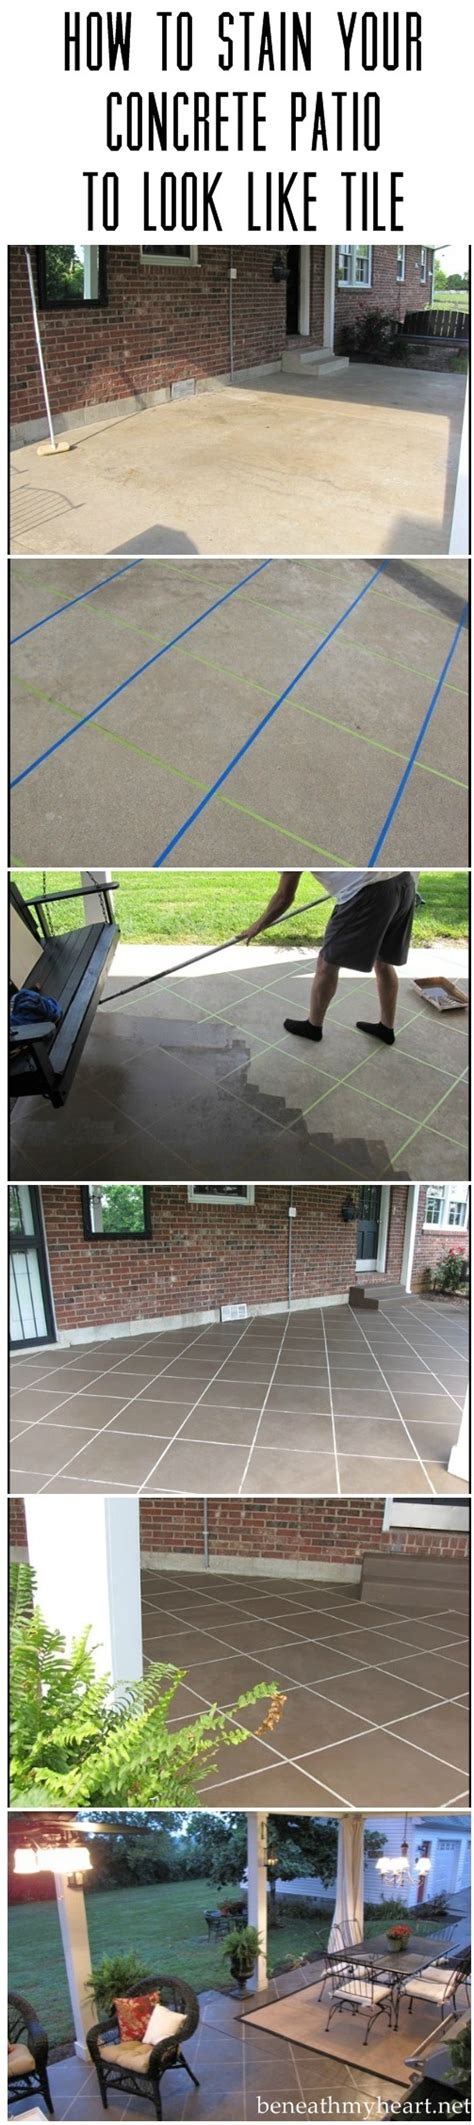 How To Stain Your Concrete Patio by How To Stain Your Concrete Patio To Look Like Tile